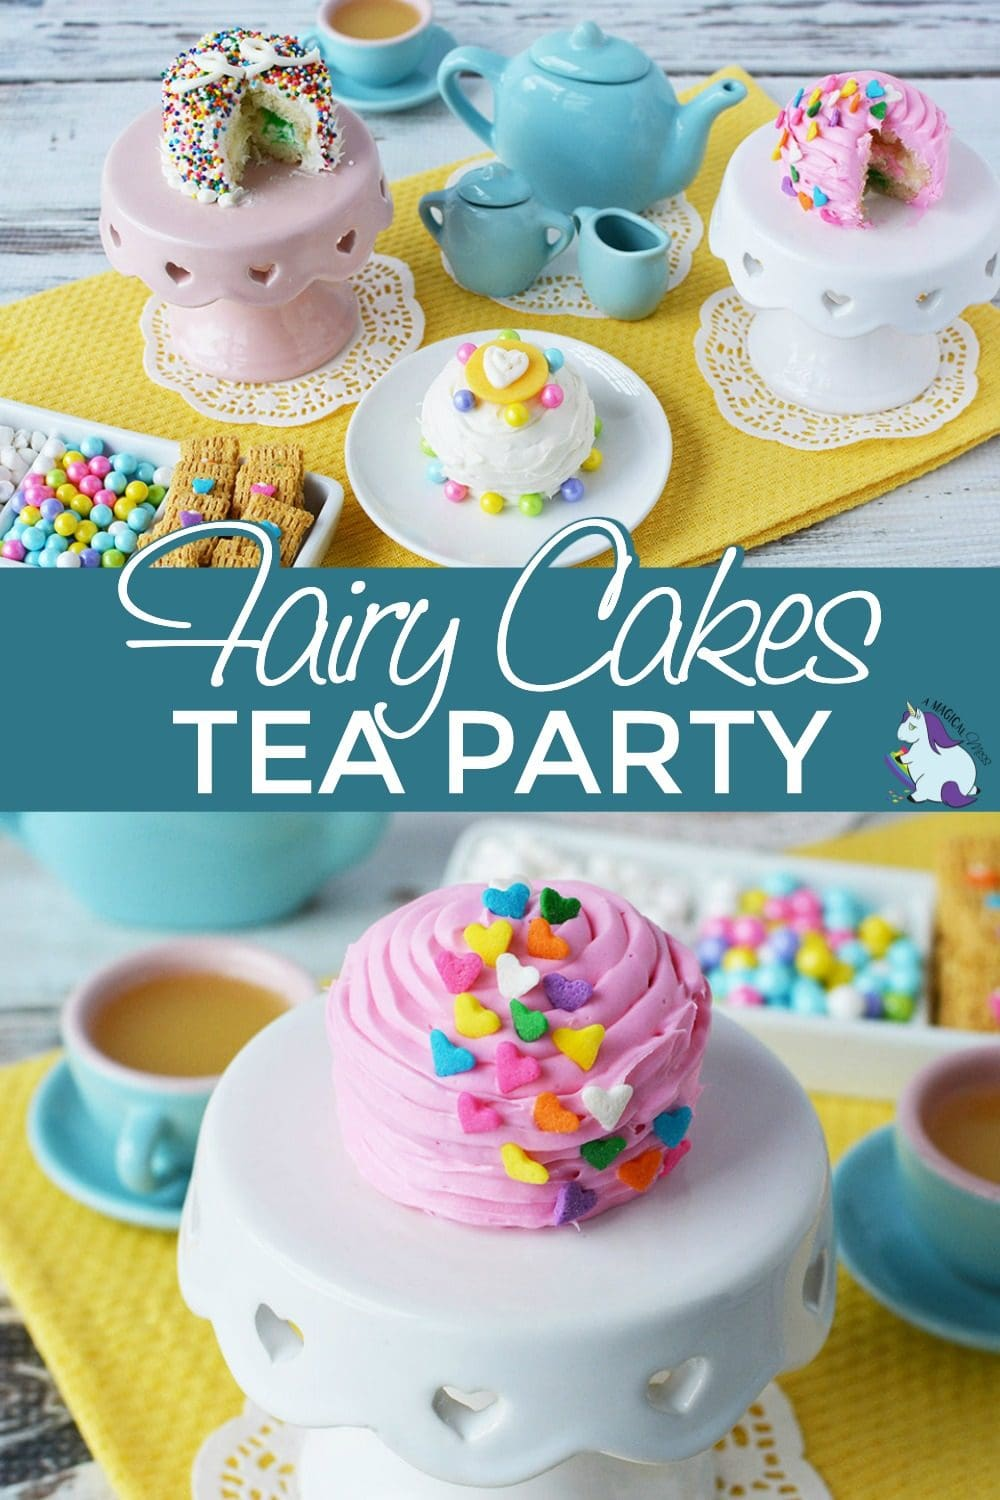 Tea party with mini cakes and treats.